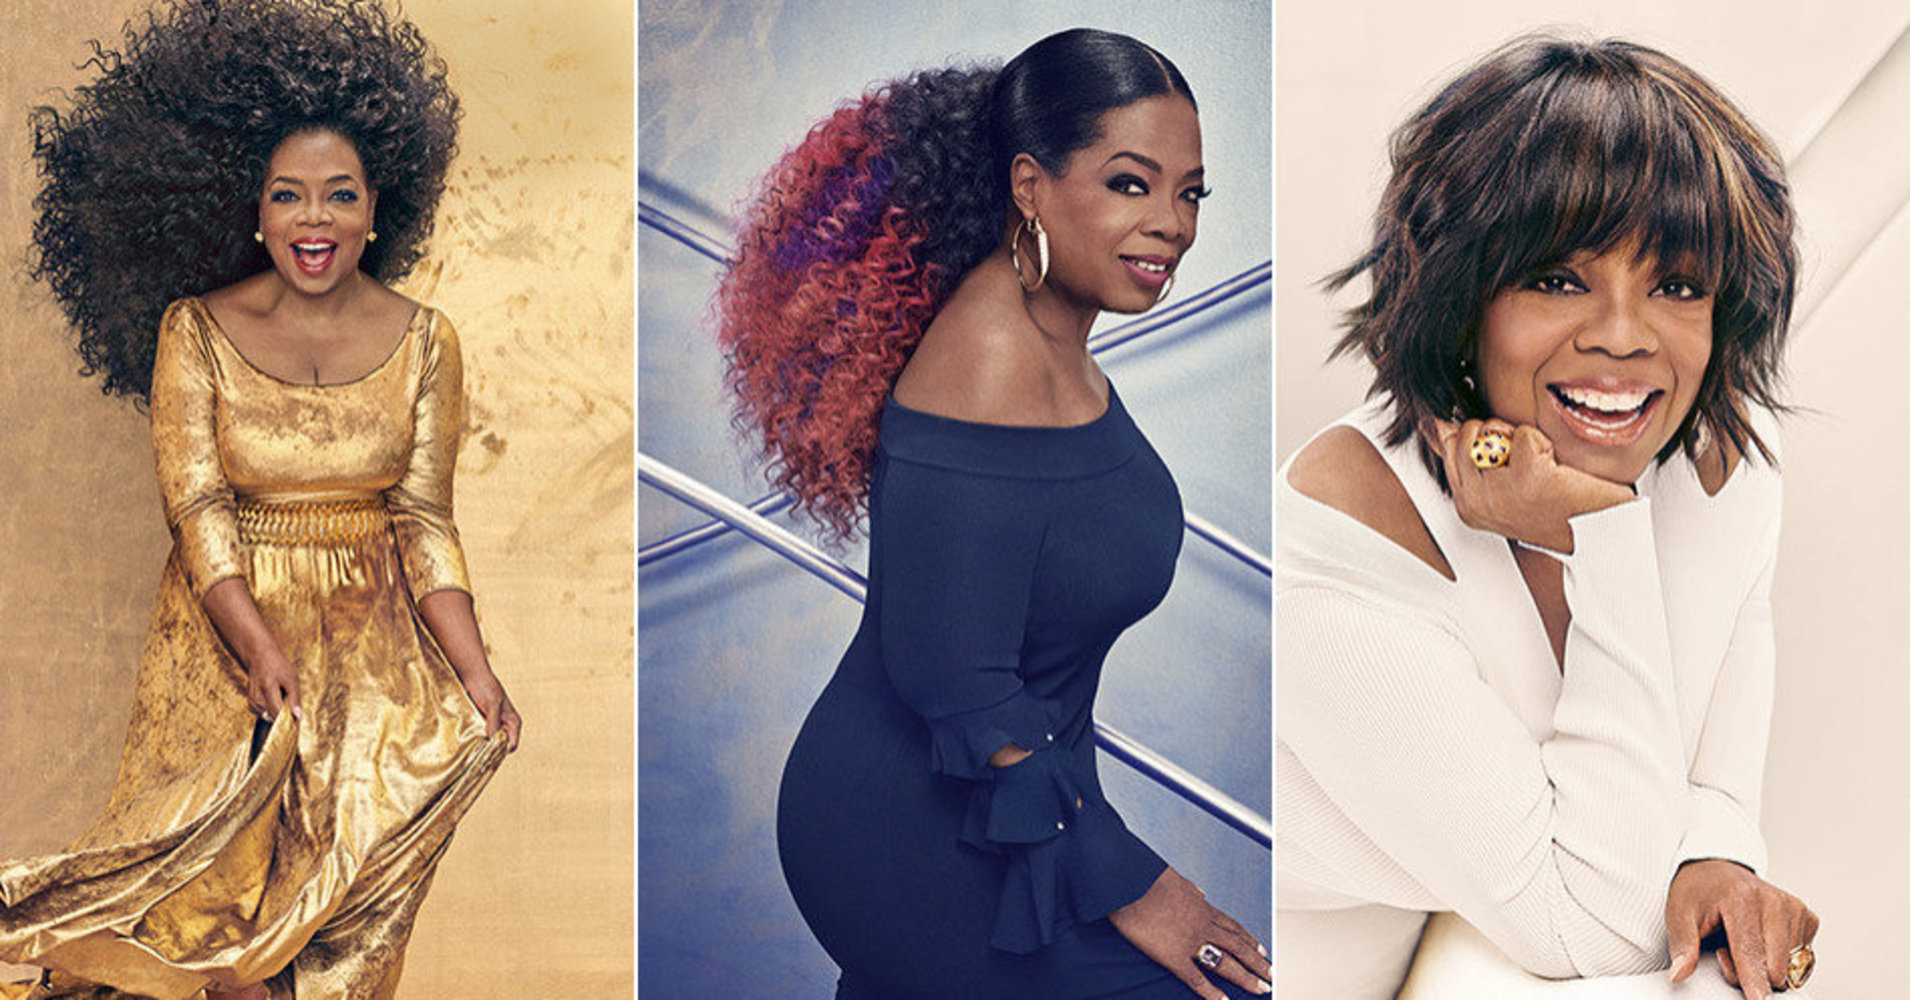 Oprah Tries Three Glam Looks In The New Issue Of O Magazine